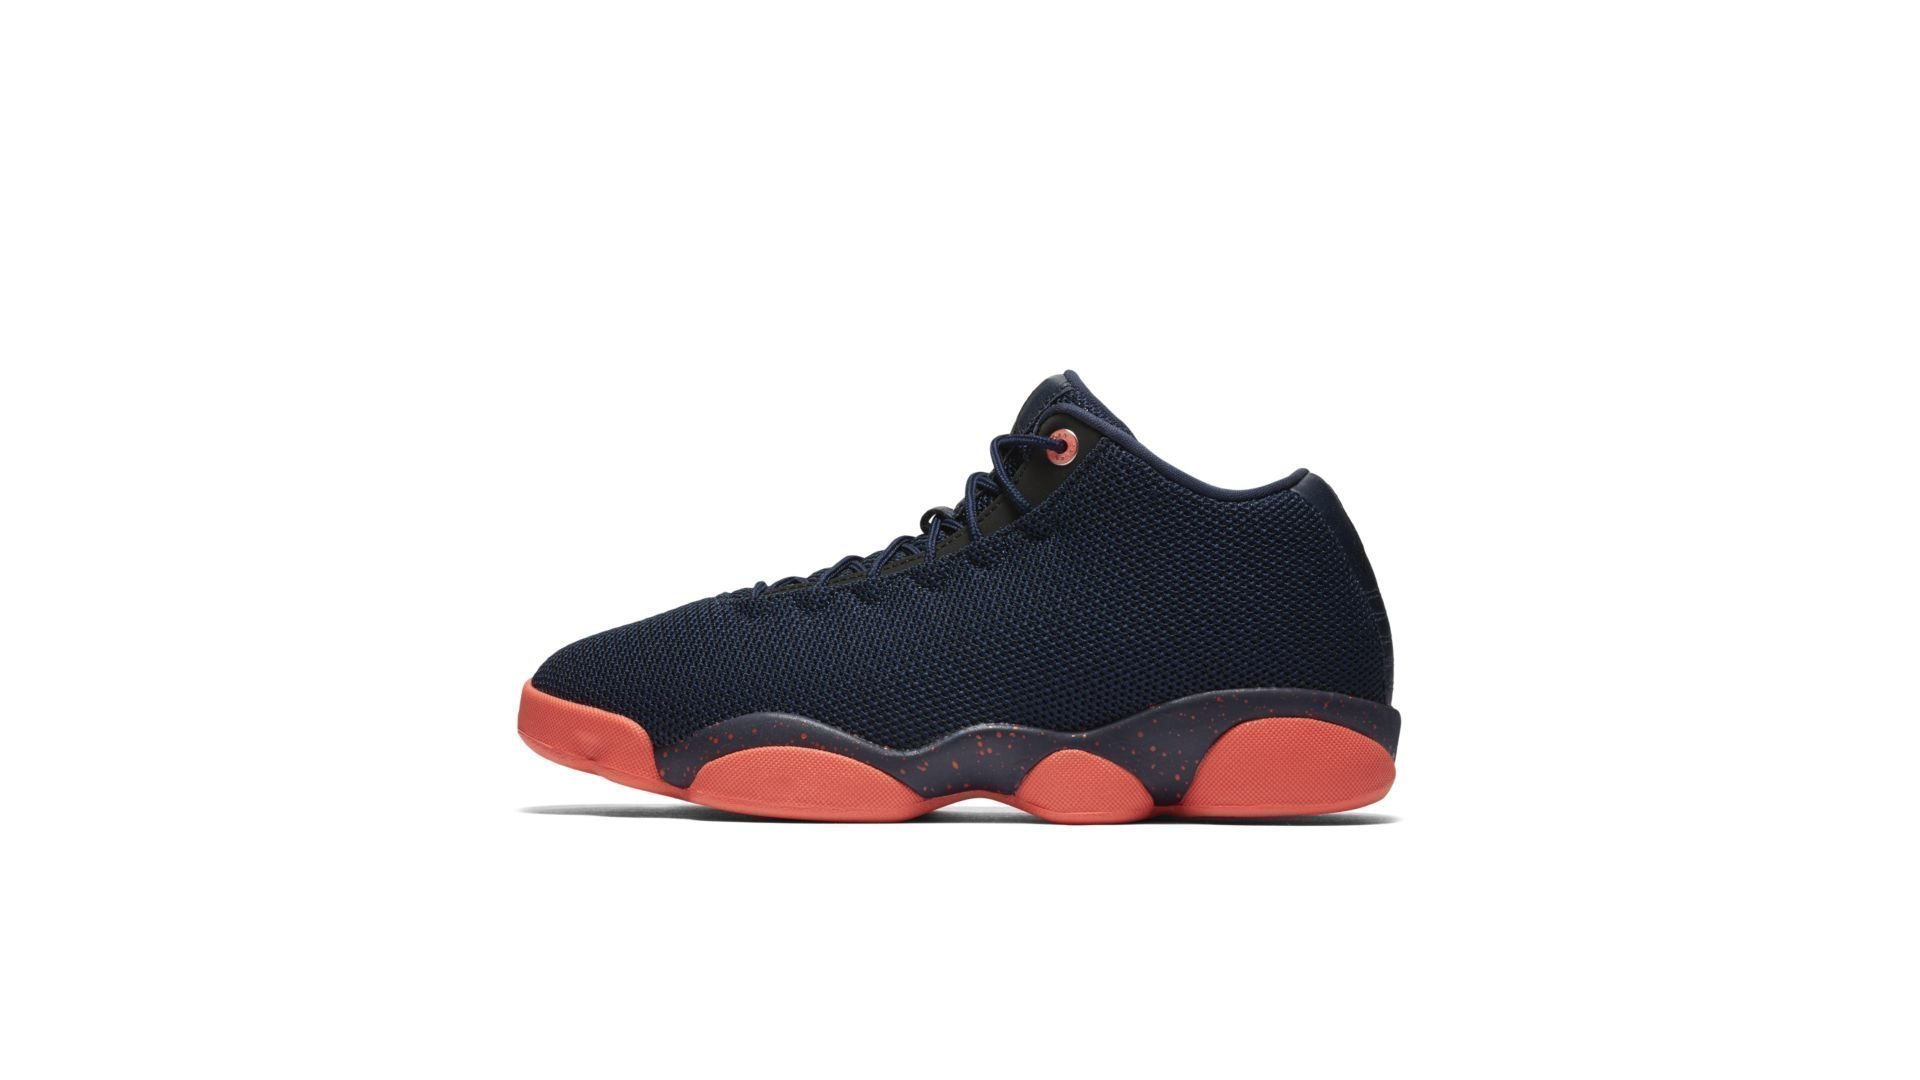 Jordan Horizon Low Obsidian Infrared 23 (845098-406)